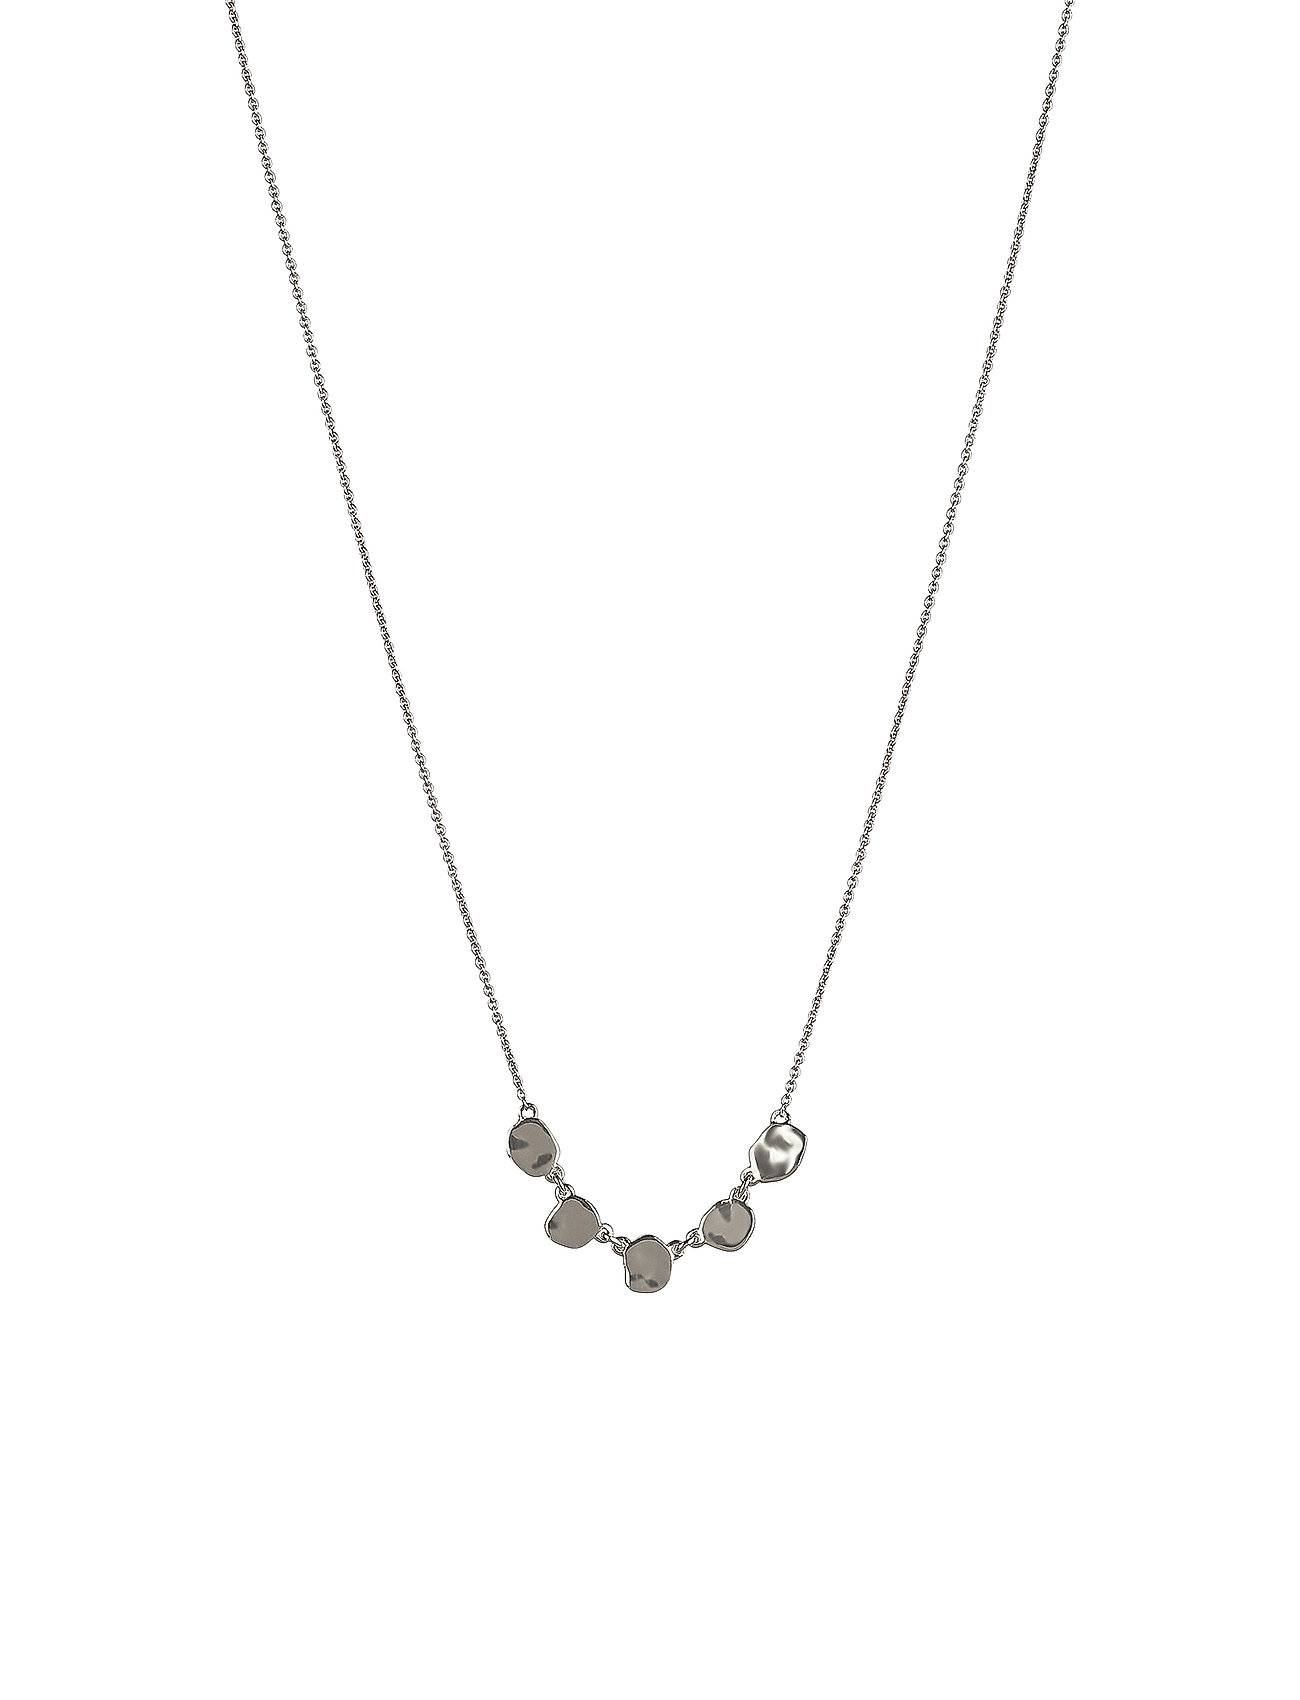 Syster P Divine Disc Necklace Silver Accessories Jewellery Necklaces Dainty Necklaces Hopea Syster P